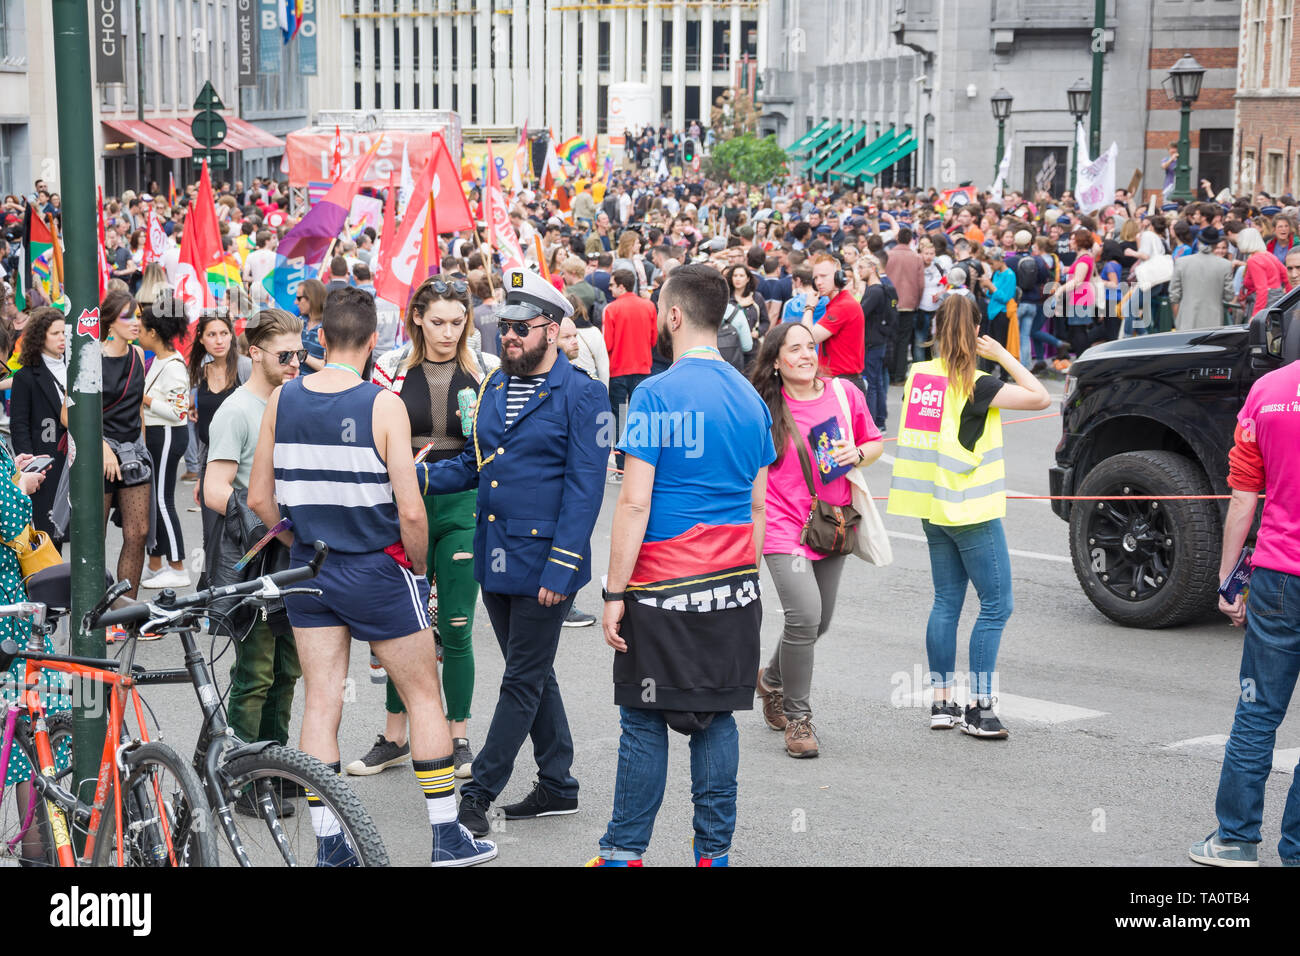 The Belgian Pride 2019 - gay Pride festival / LGBT event, Brussels - Stock Image